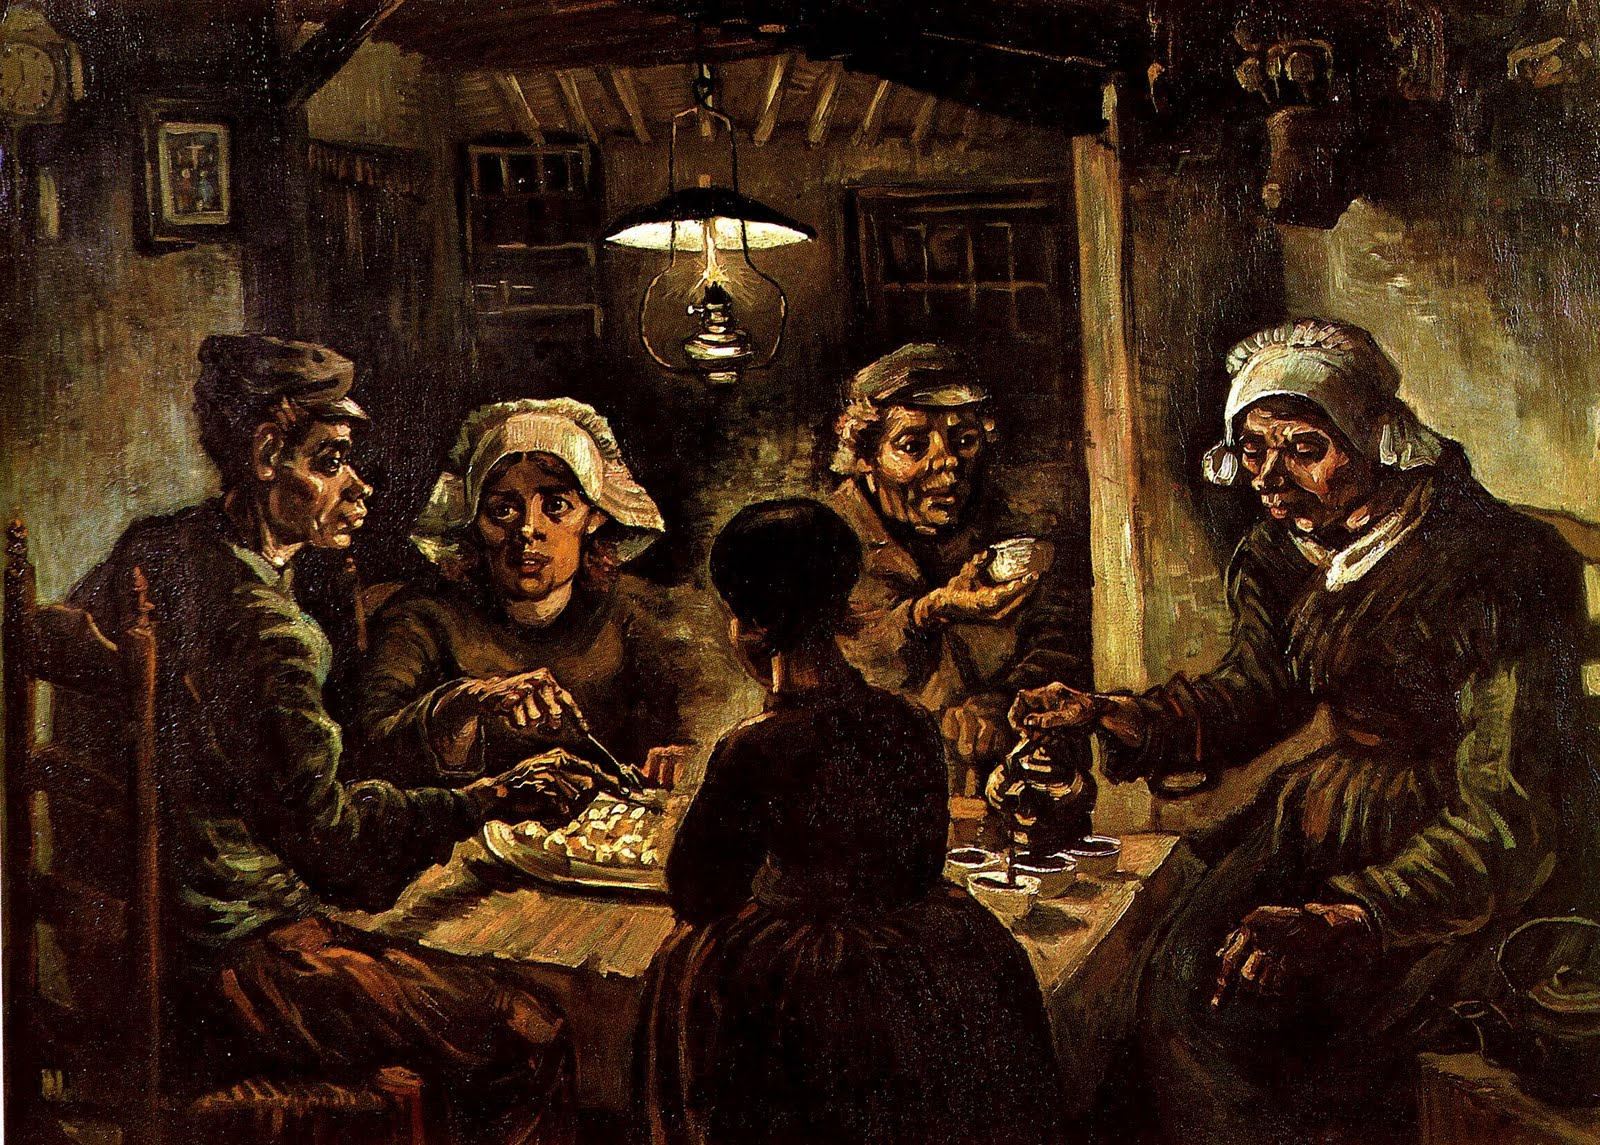 van_gogh_potato_eaters_1.jpg